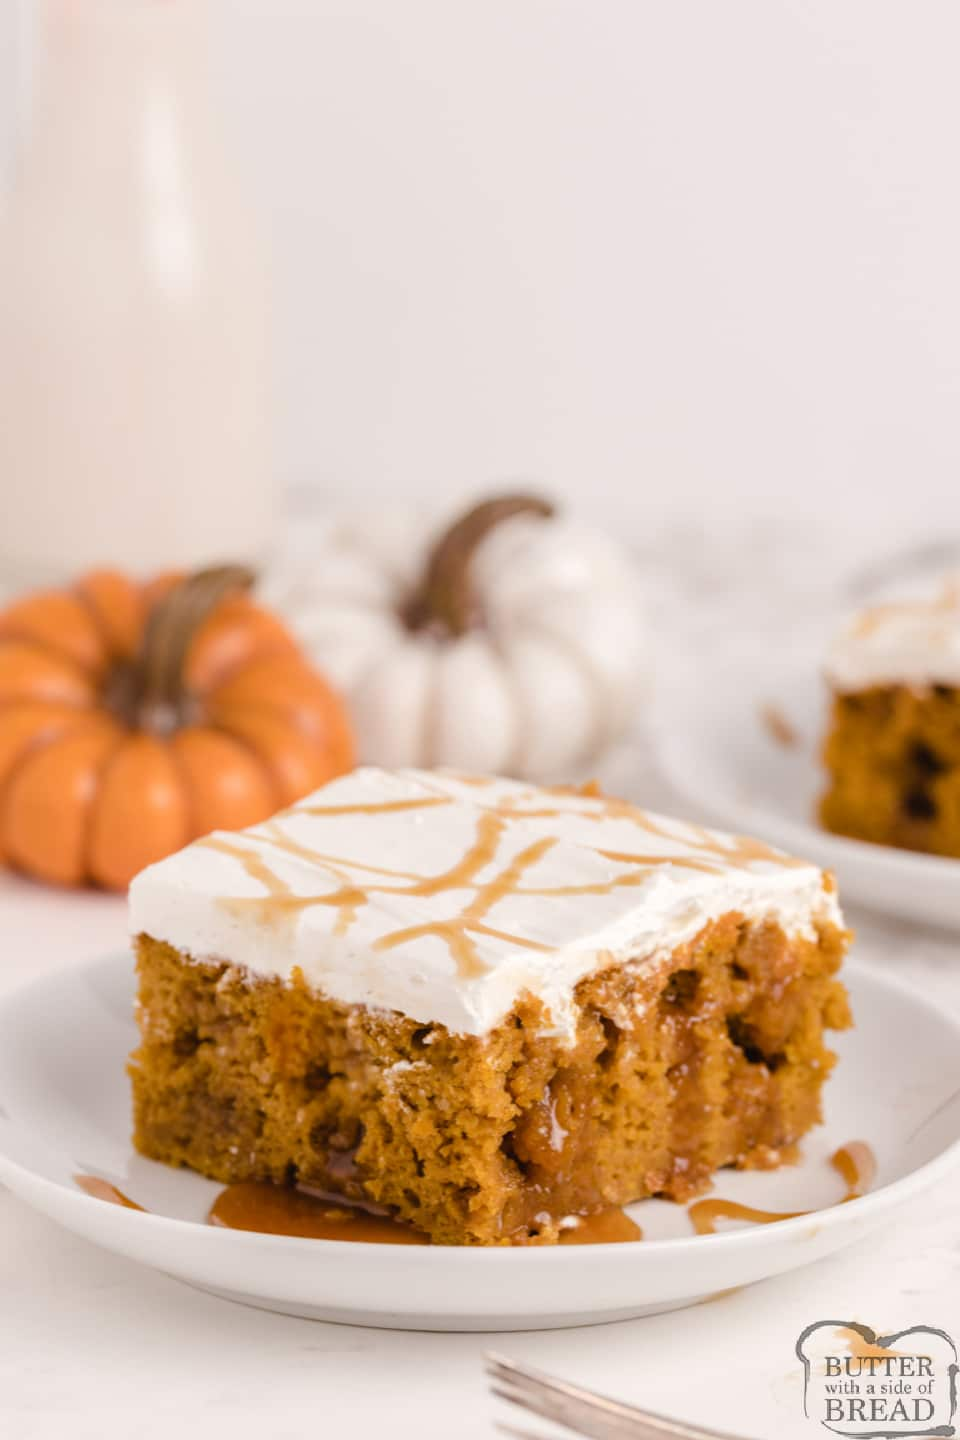 Caramel Pumpkin Poke Cake made with a cake mix, pumpkin, caramel and a simple cream frosting on top! Deliciously decadent poke cake recipe that is perfect for fall.